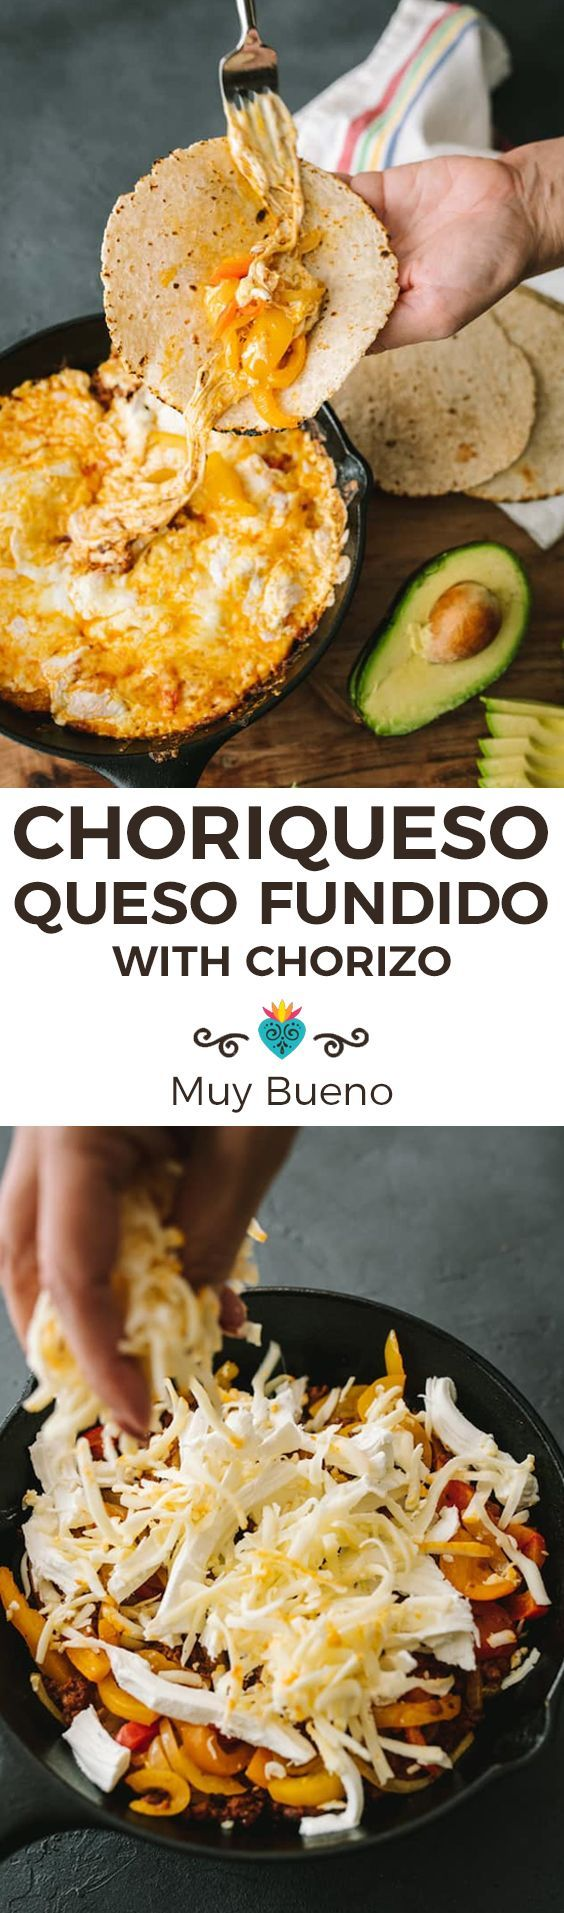 Choriqueso (Queso Fundido with Chorizo) #easymexicanfoodrecipes